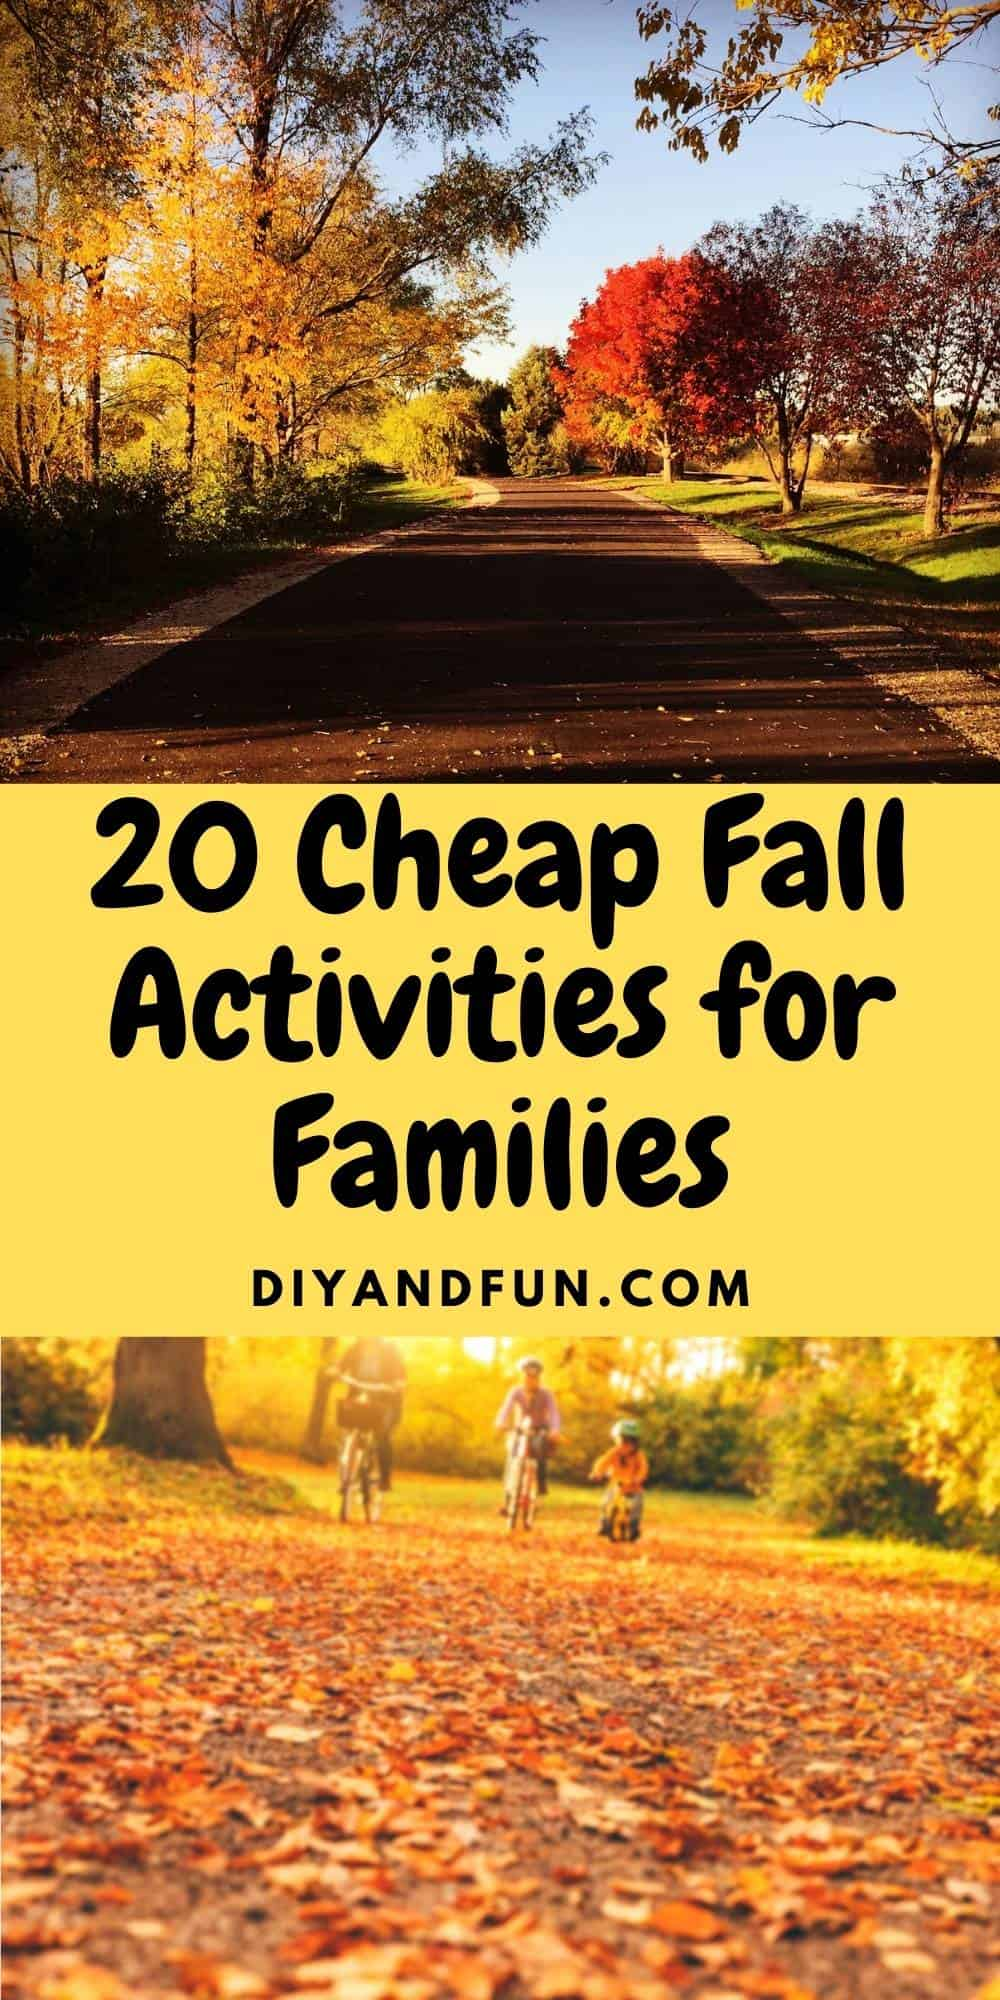 20 Cheap Fall Activities for Families that kids and parents can enjoy together. Includes a free download checklist.